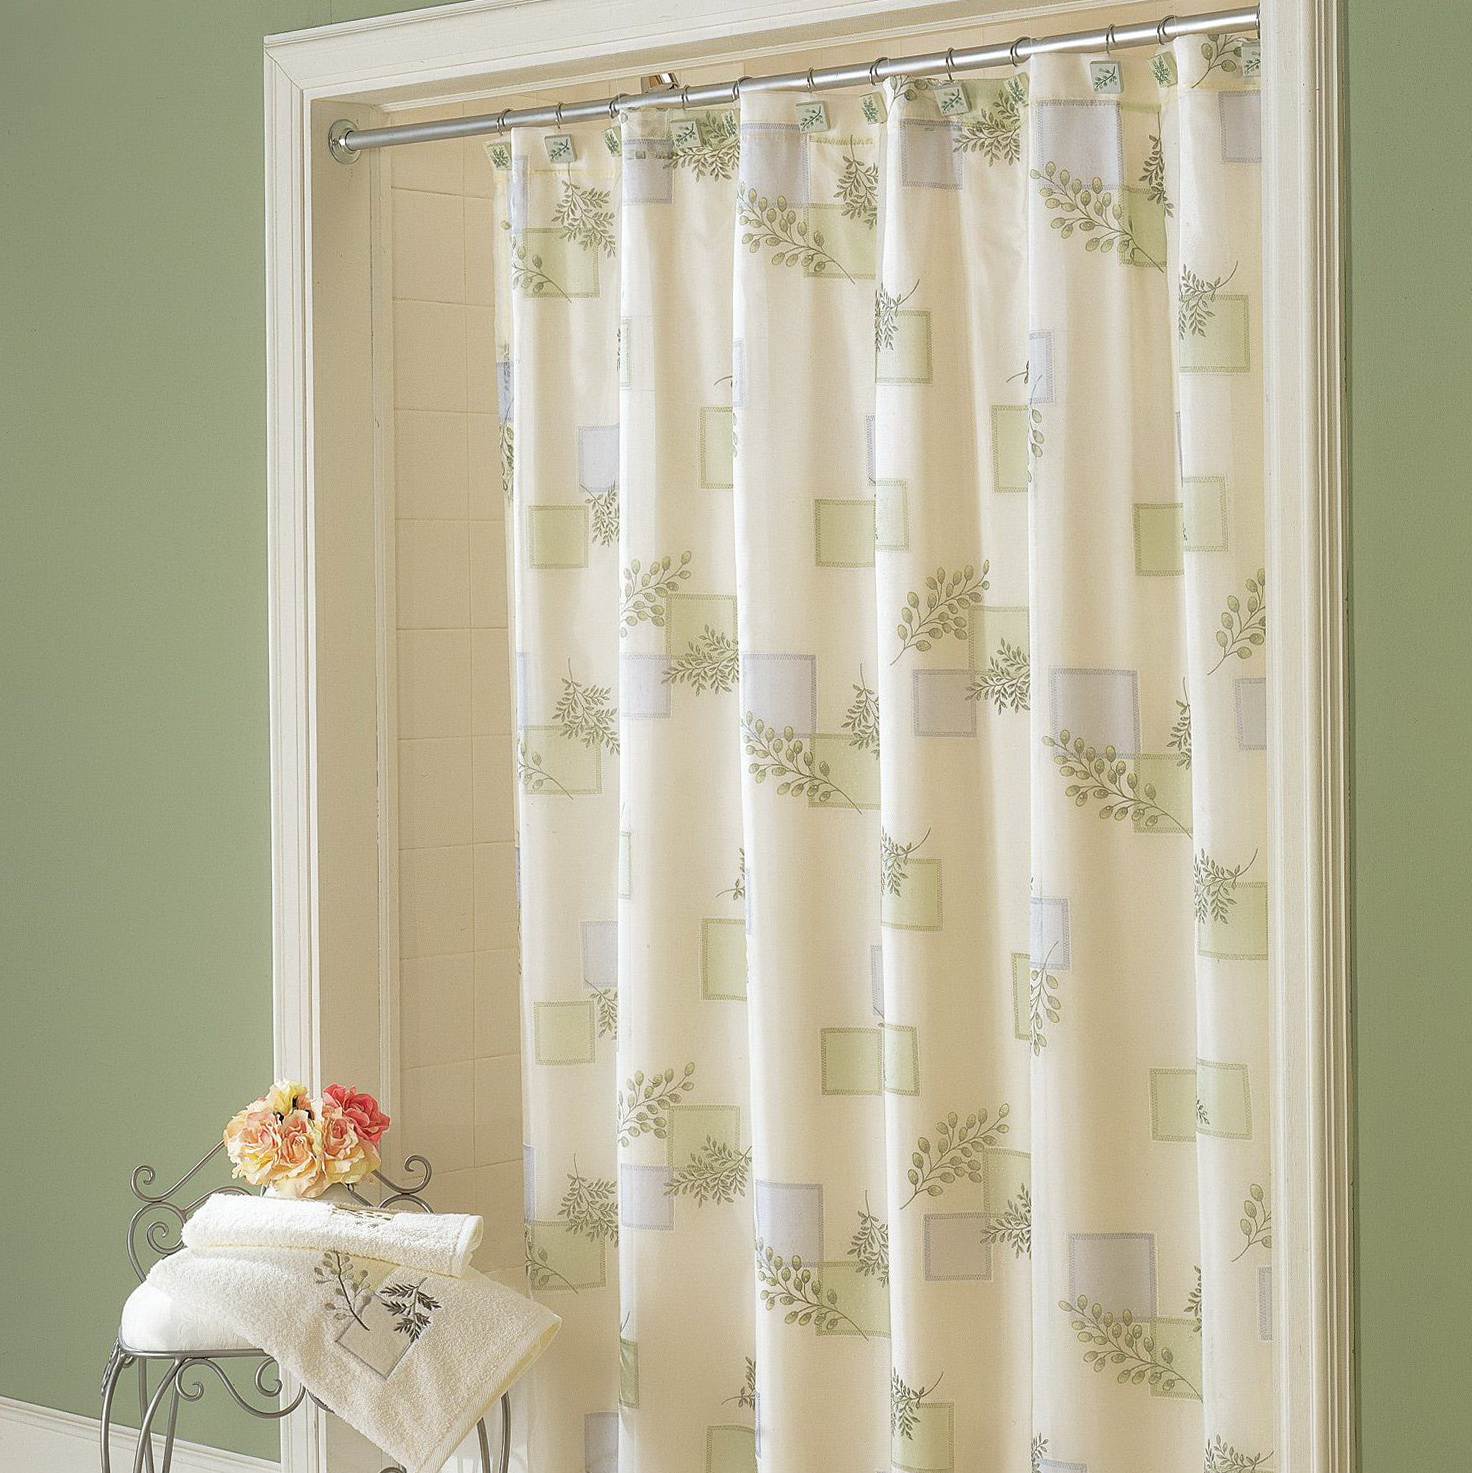 Long Shower Curtains Walmart Home Design Ideas